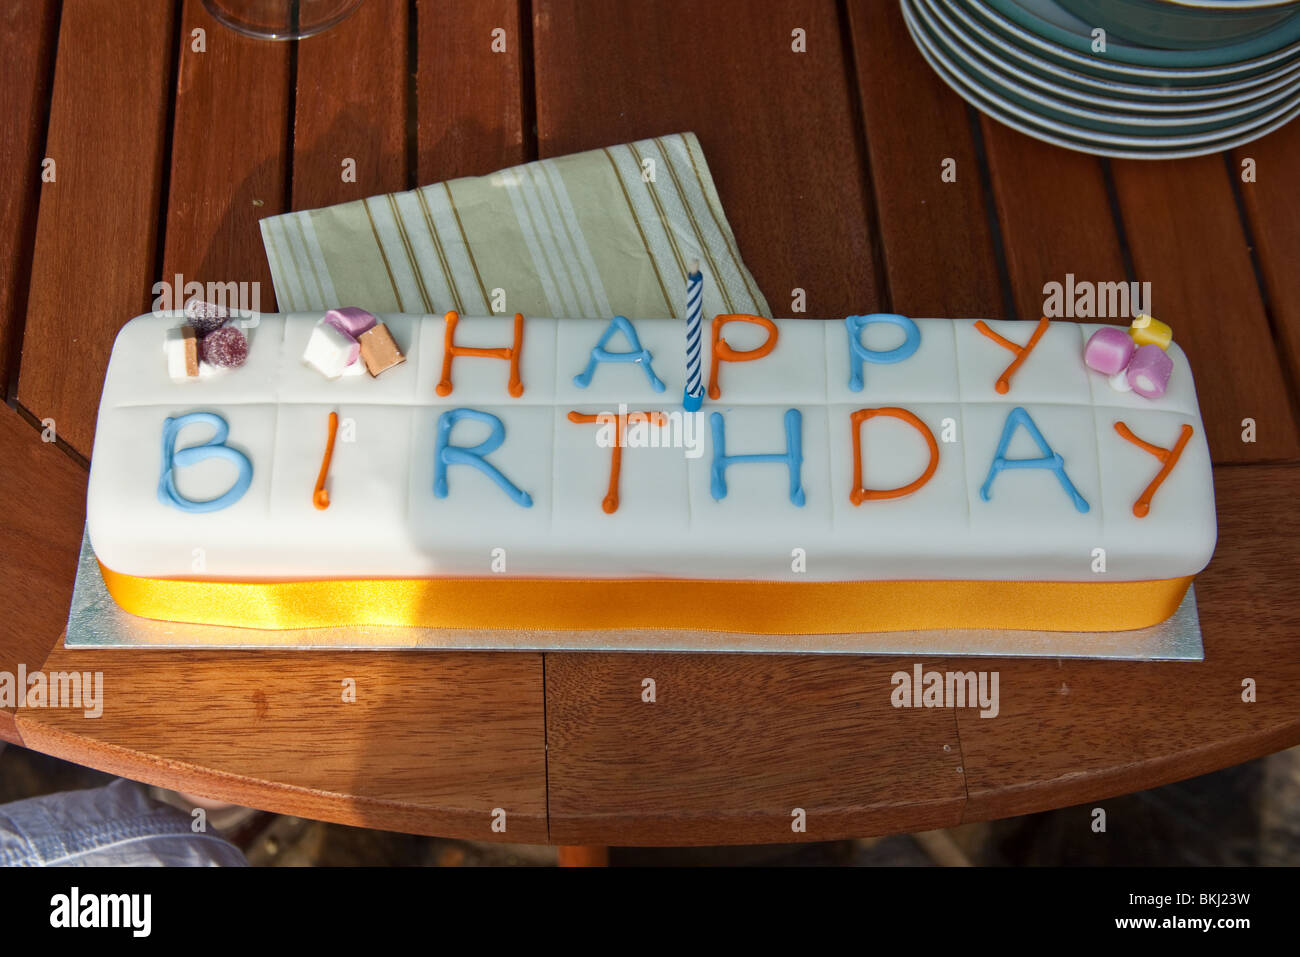 Birthday cake on a wooden table. - Stock Image